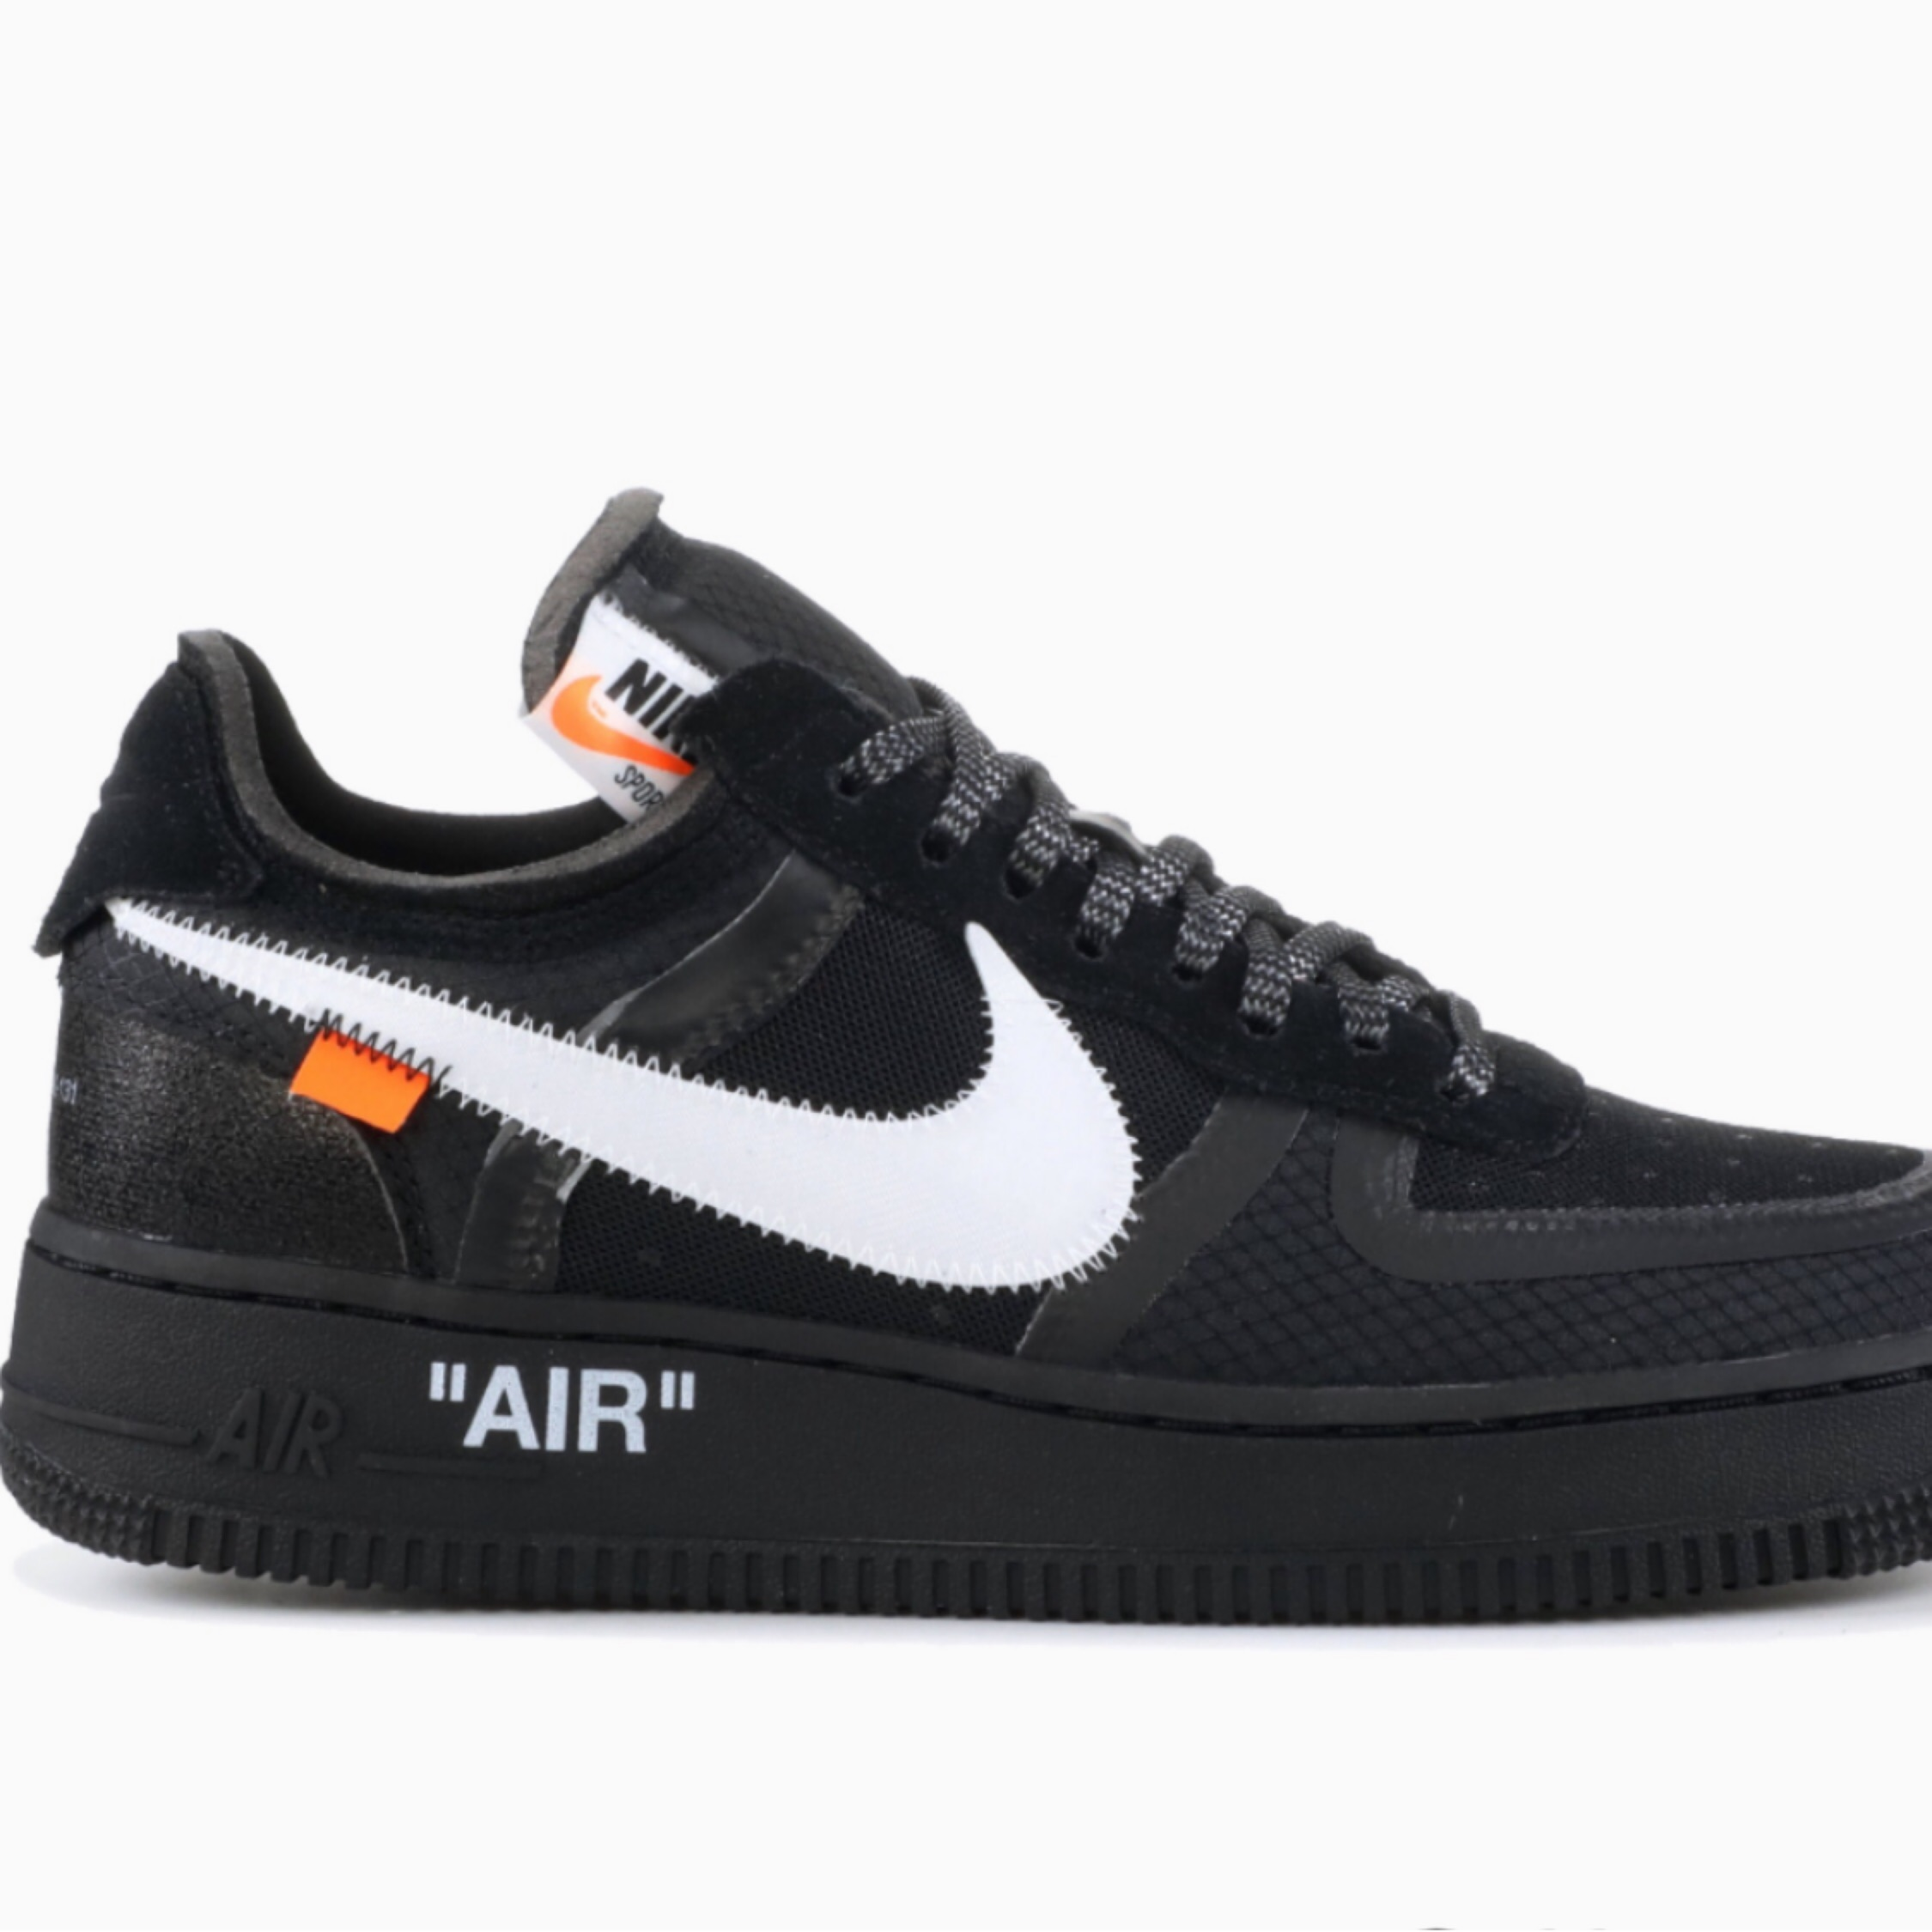 finest selection 888ec c27e8 Air Force 1 Low Off-White Black White